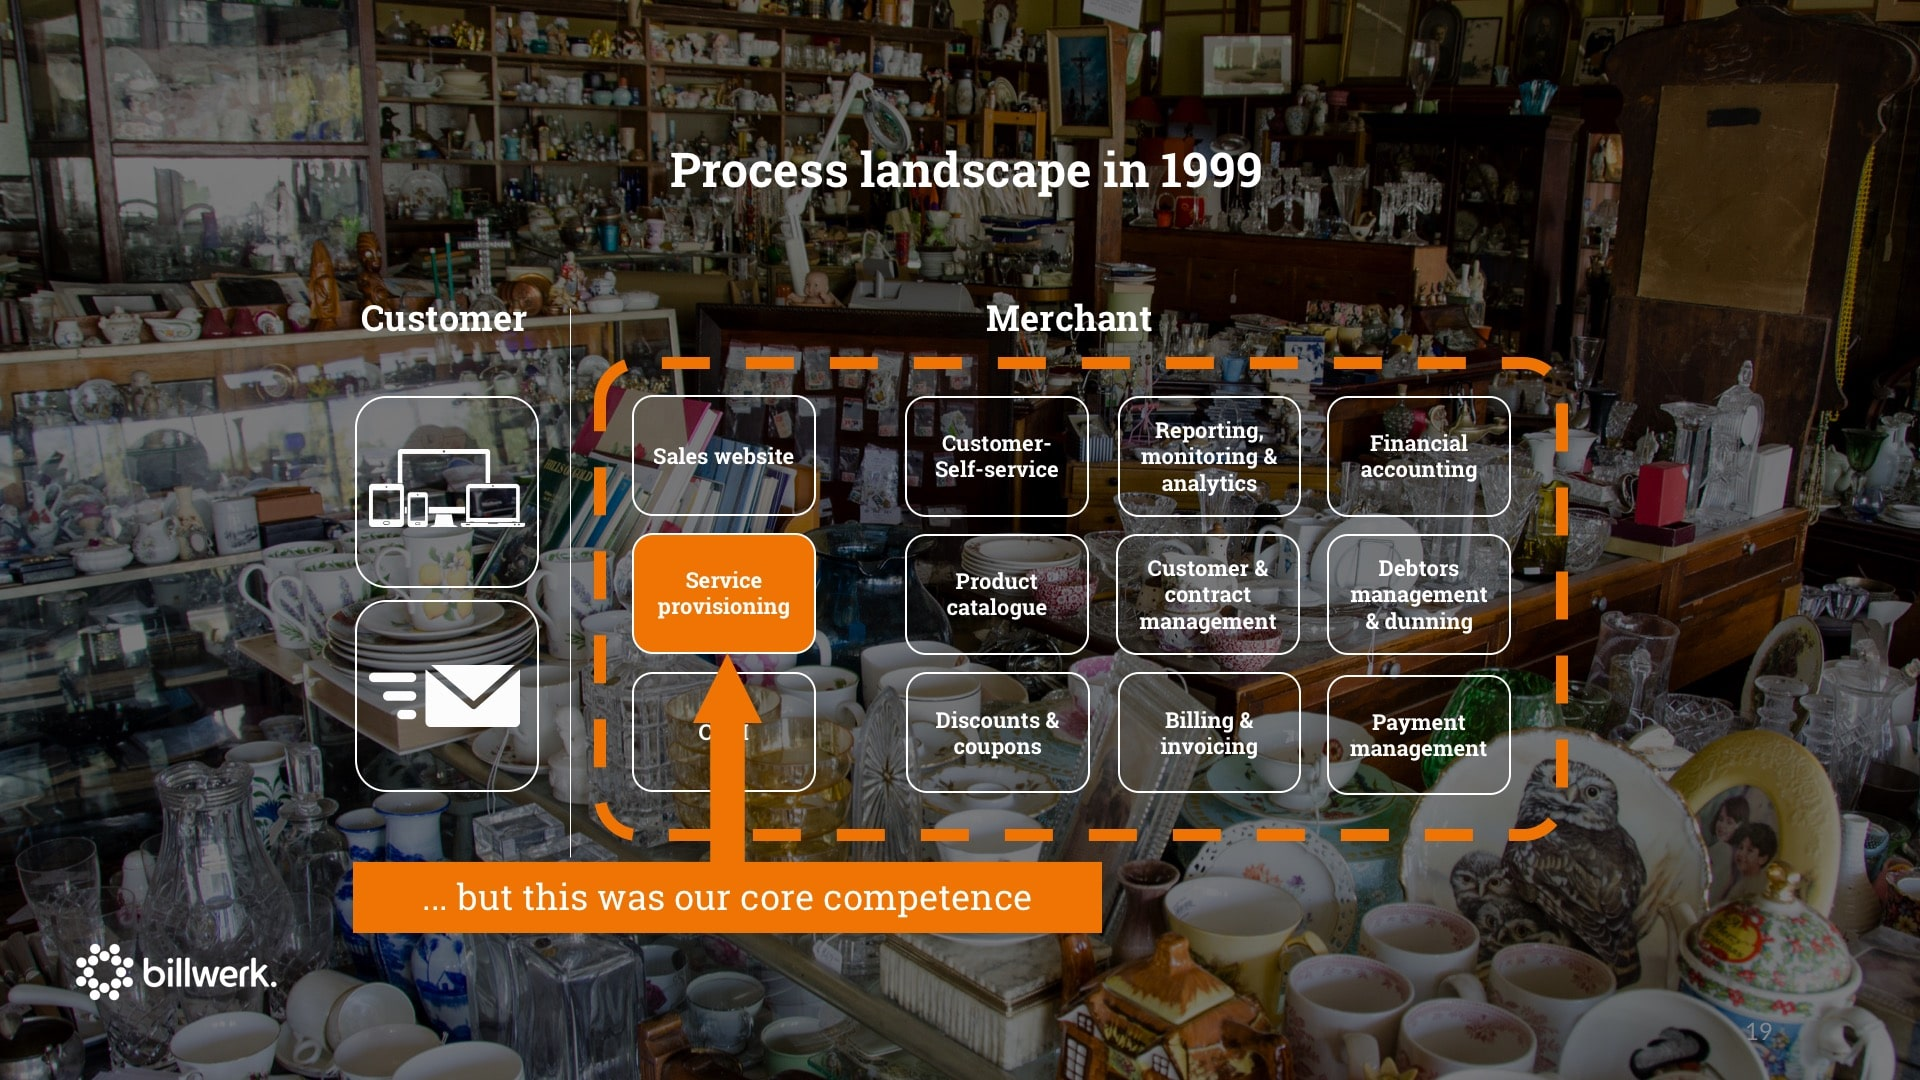 Keynote Saastock | CEO Dr. Ricco Deutscher | Process Landscape in 1999